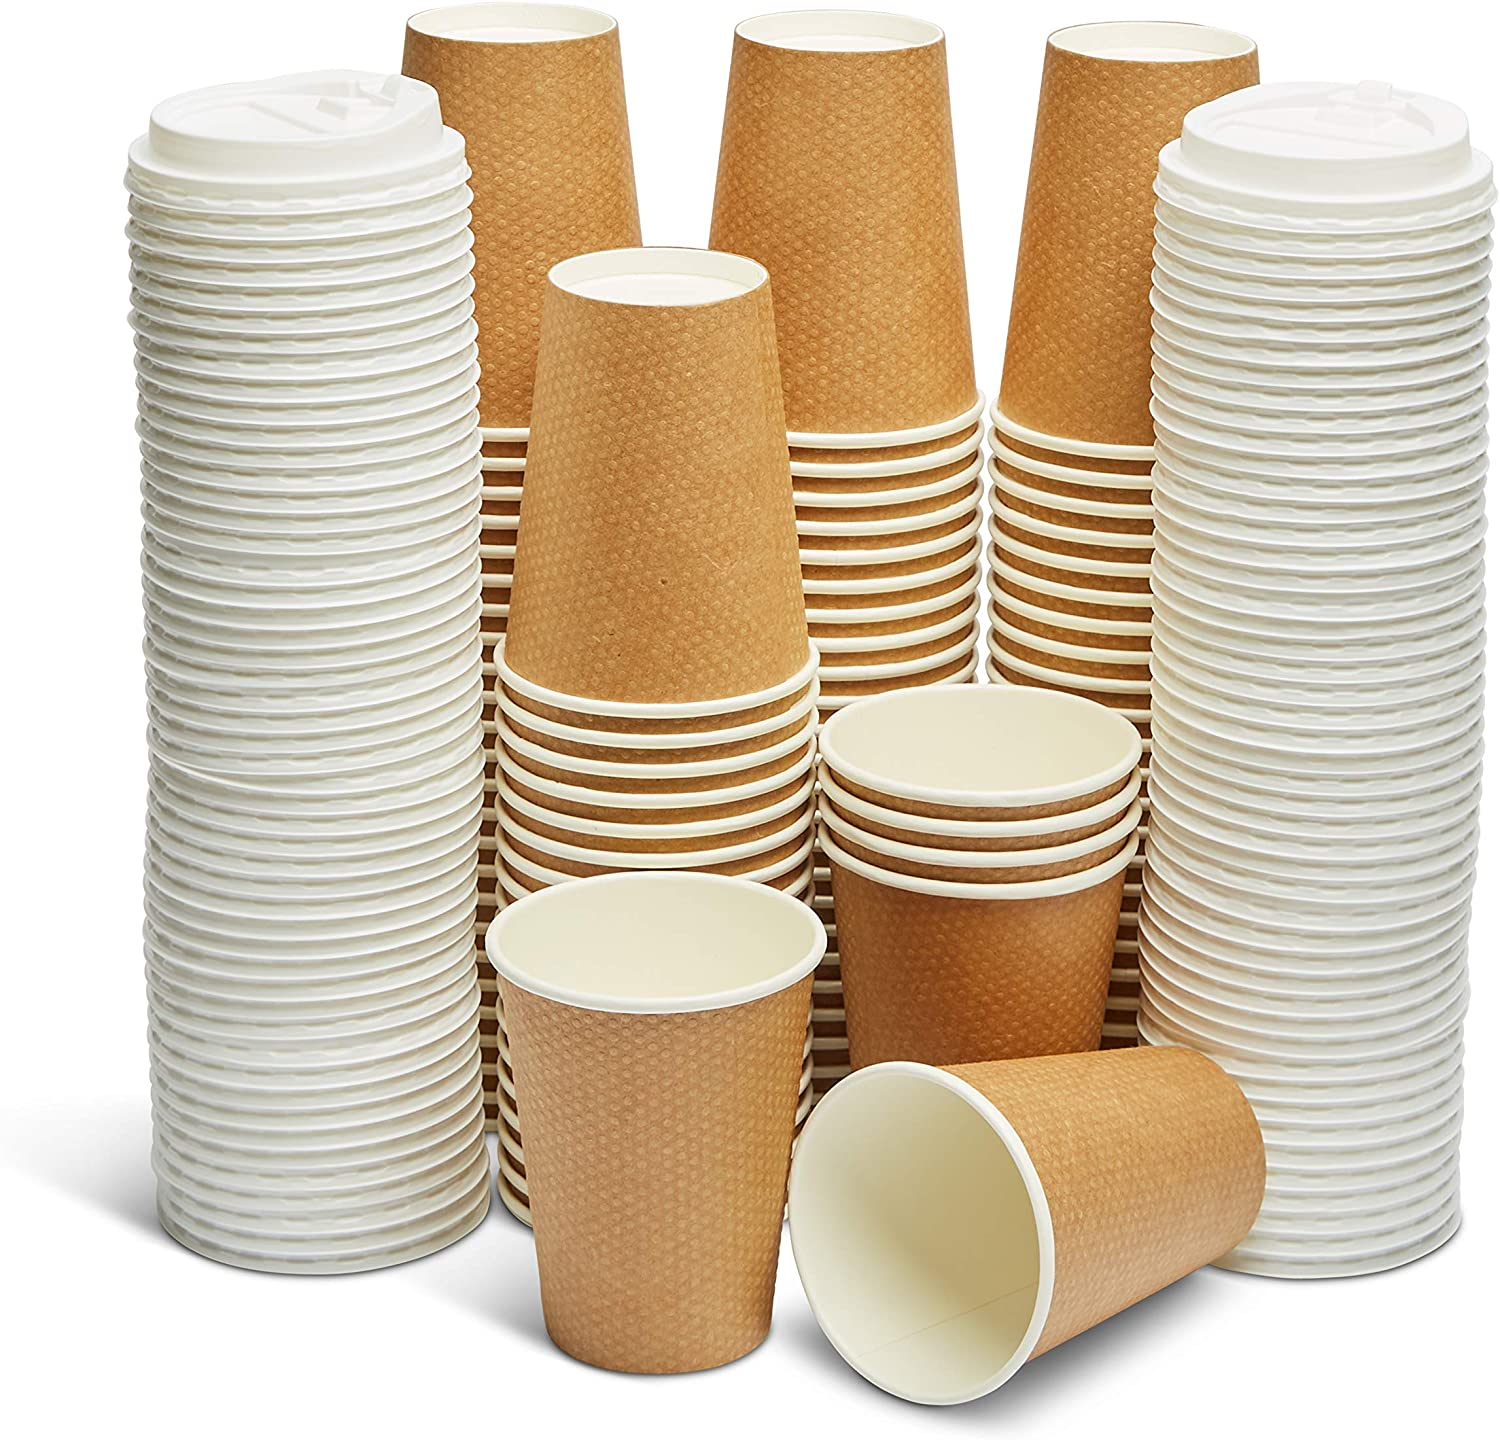 GeeOnyx Biodegradable 12 Oz Coffee Cups - 100 Pack - Resealable Lid - Reusable - Brown on White - Food Safe - Double Insulated Wall - Heavy Paper Cup - Home/Office/Travel - Eco-Friendly